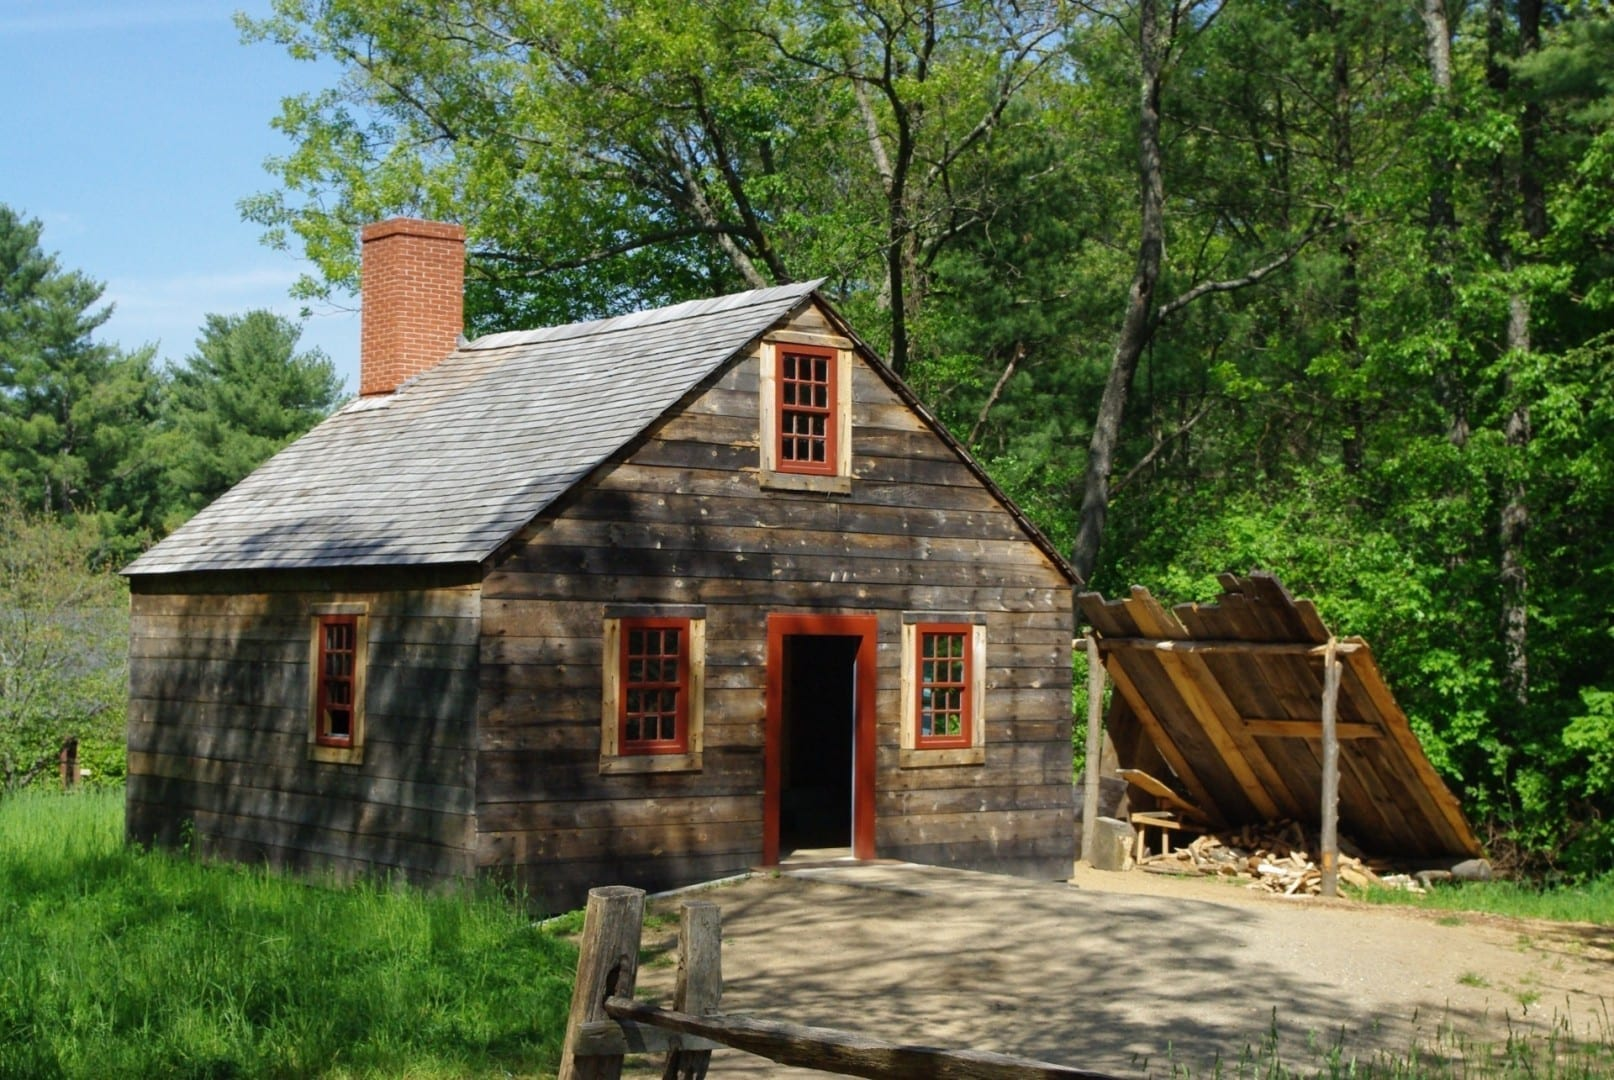 Una pequeña casa en Old Sturbridge Village Sturbridge MA Estados Unidos